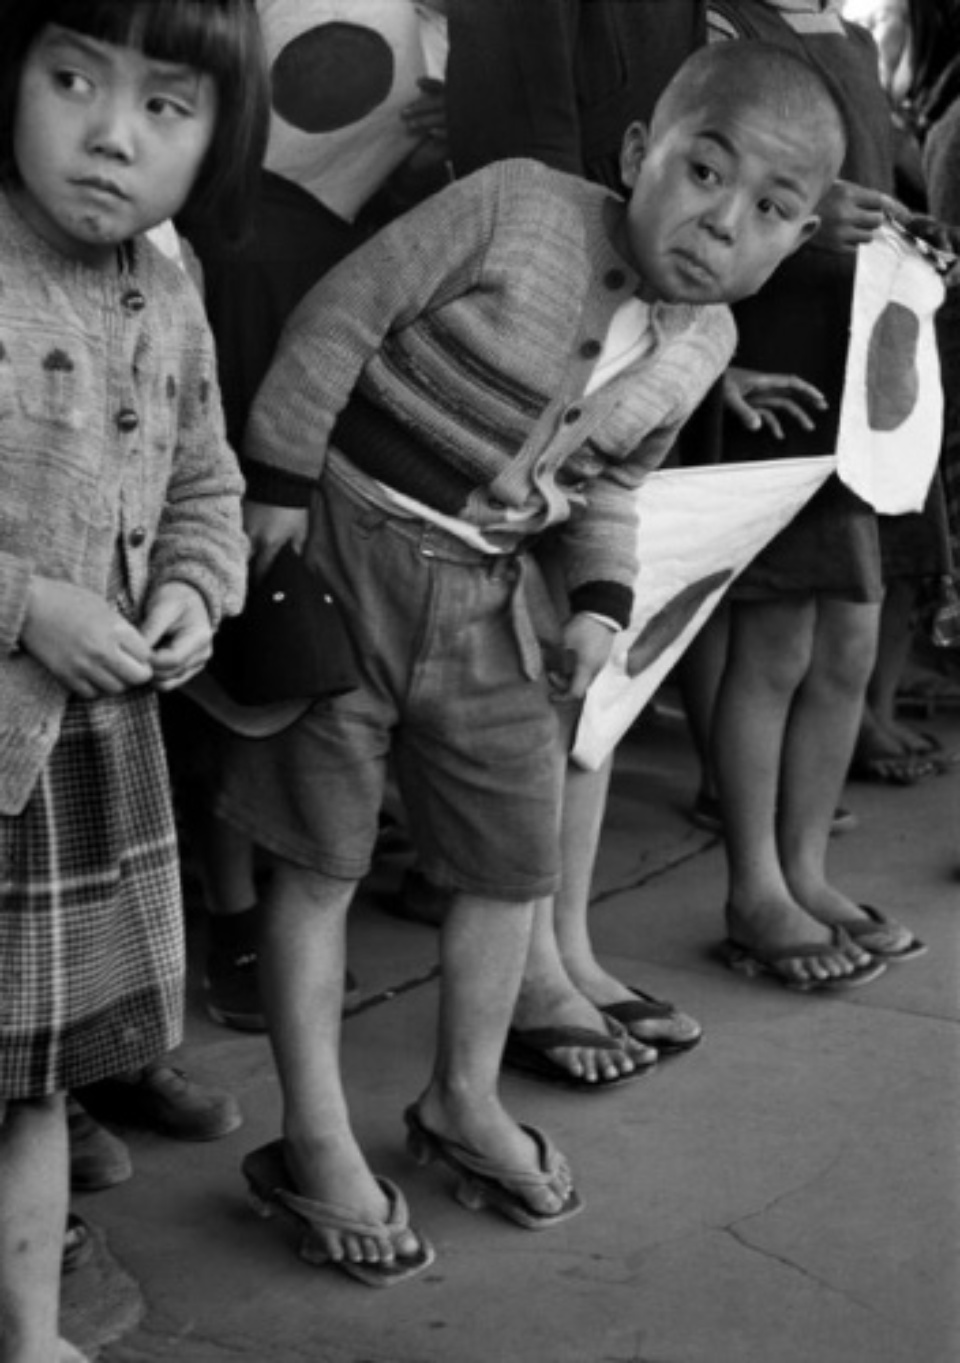 Werner Bischof: Waiting for the Emperor Hirohito, Japan, 1951 Modern gelatin silver print Estate stamp on verso 50 x 40 cm